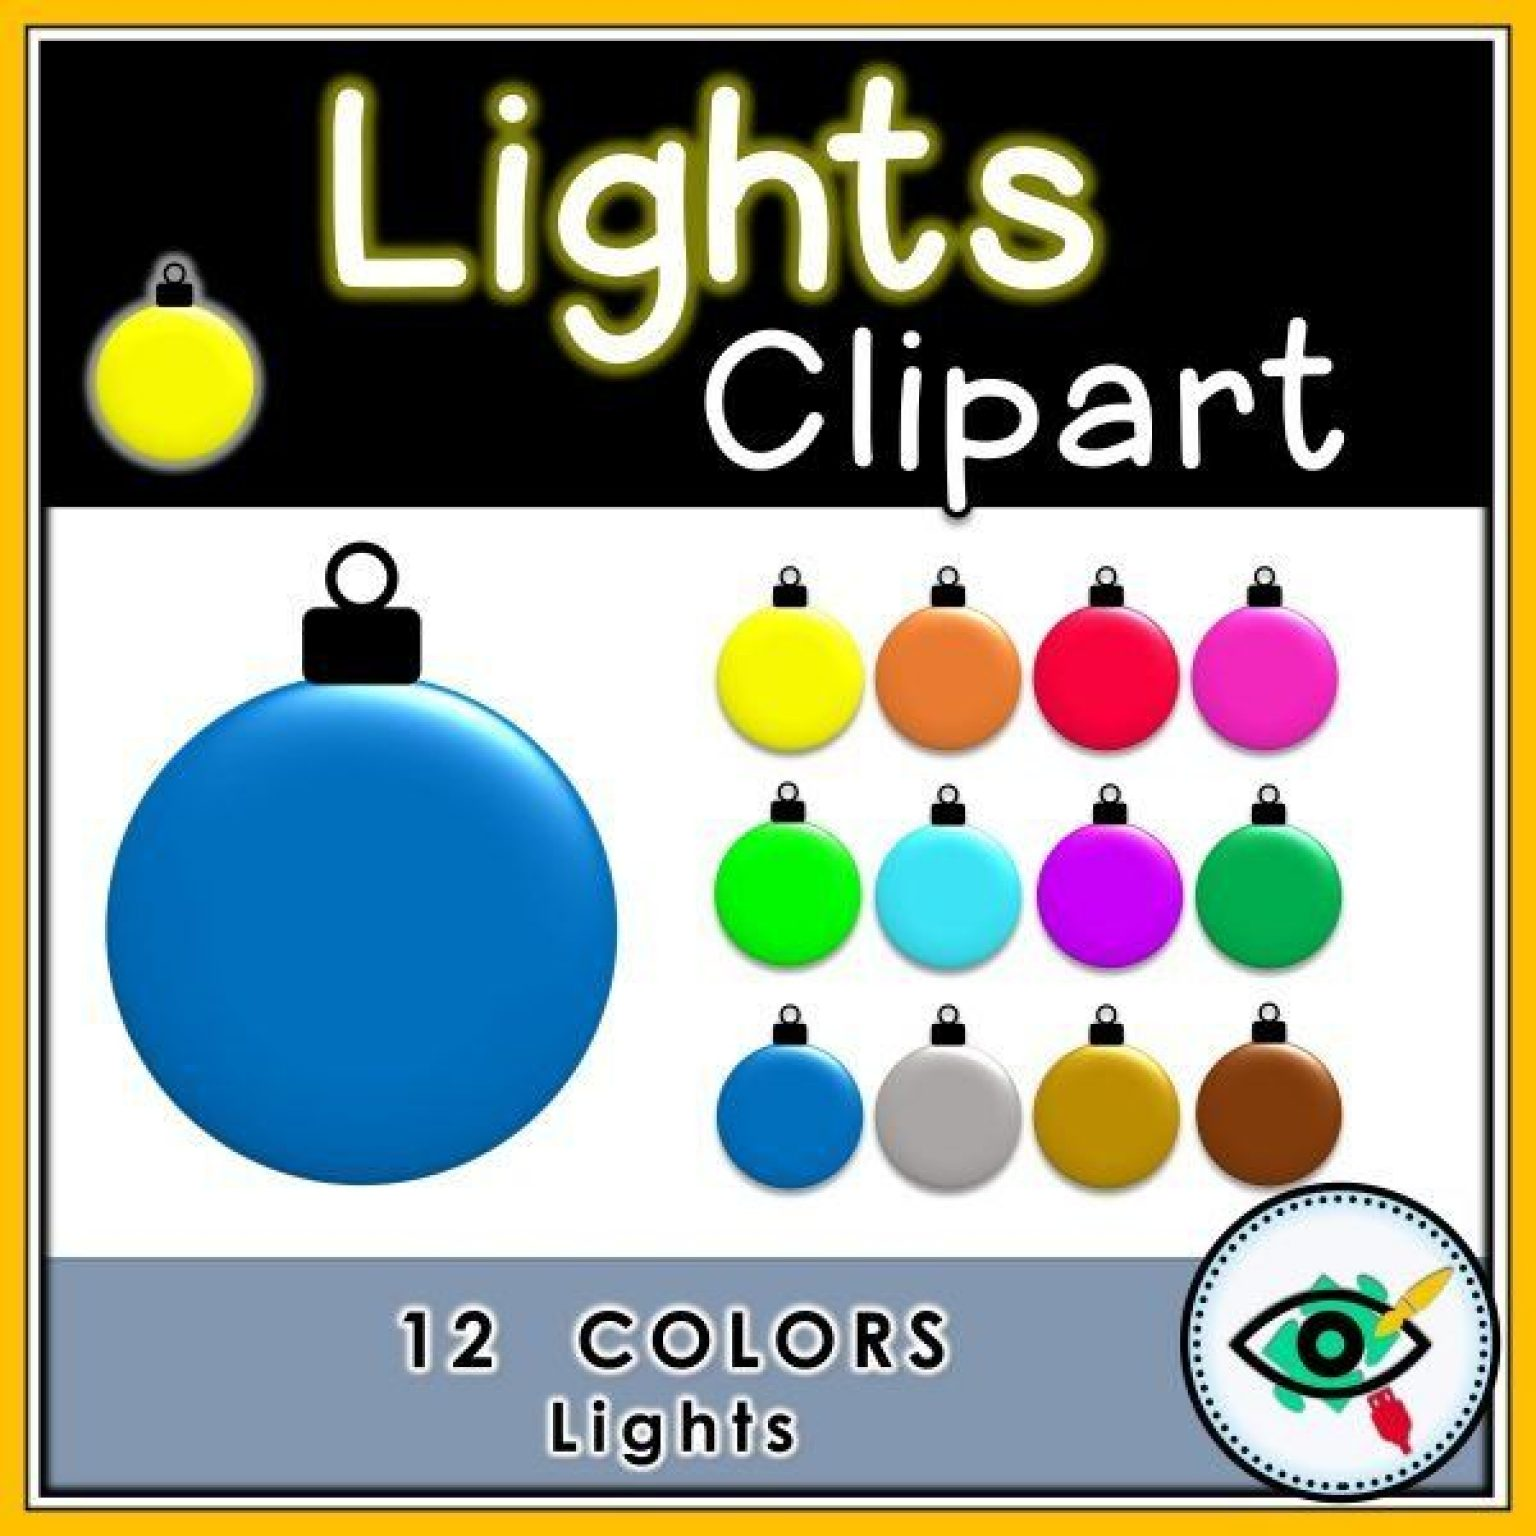 lights-clipart-title1